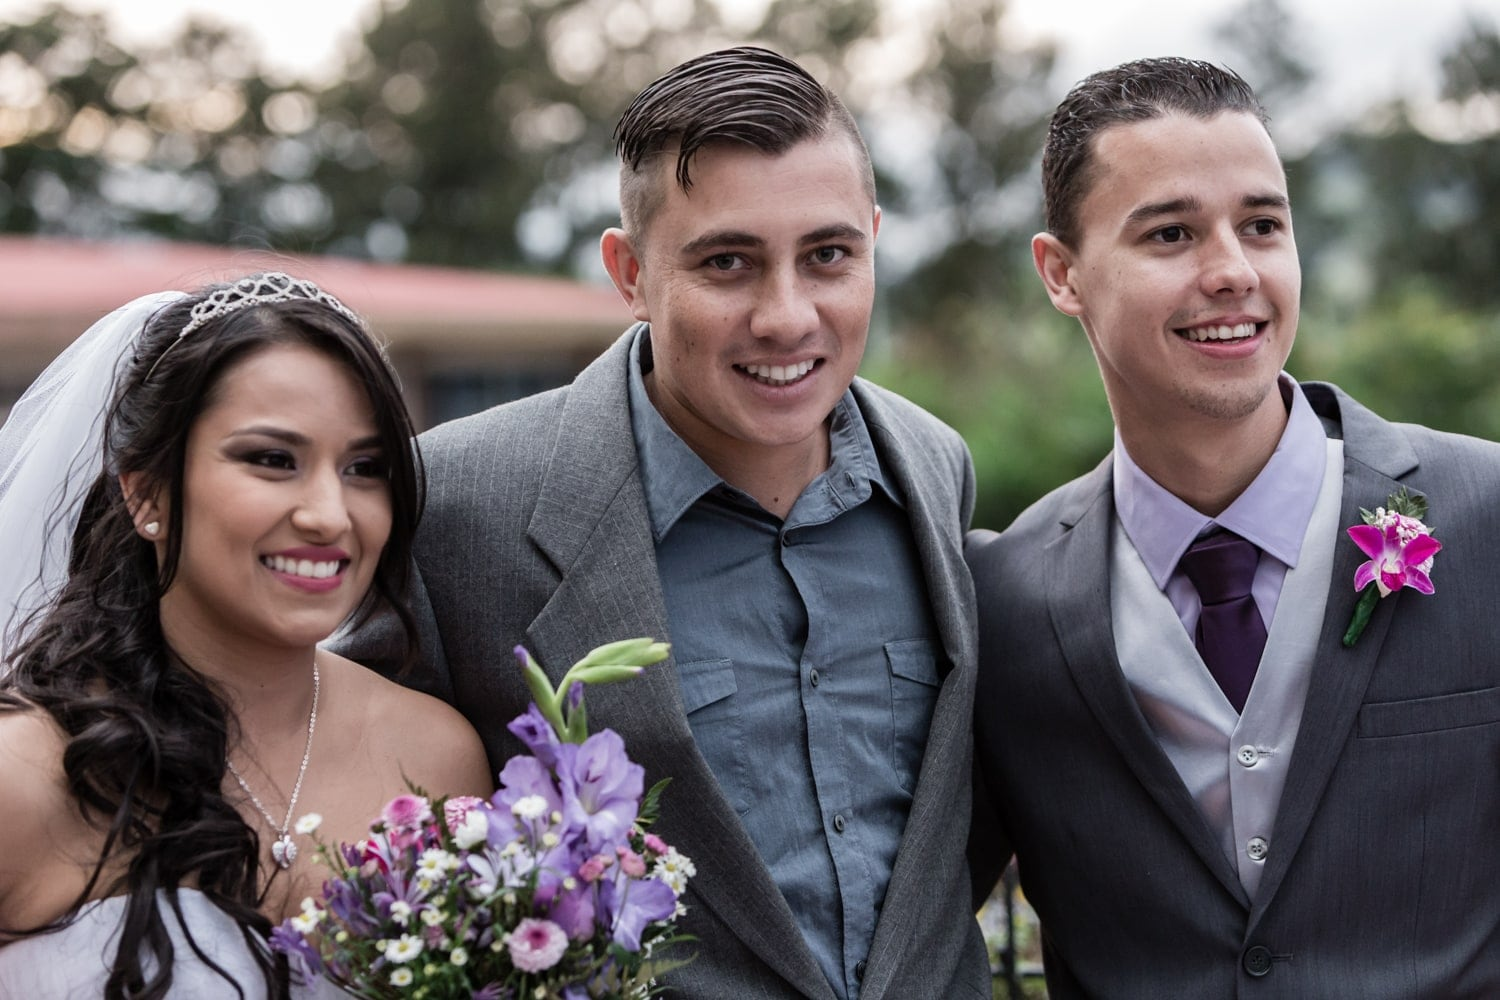 Bride and groom pose for photo with groomsman.